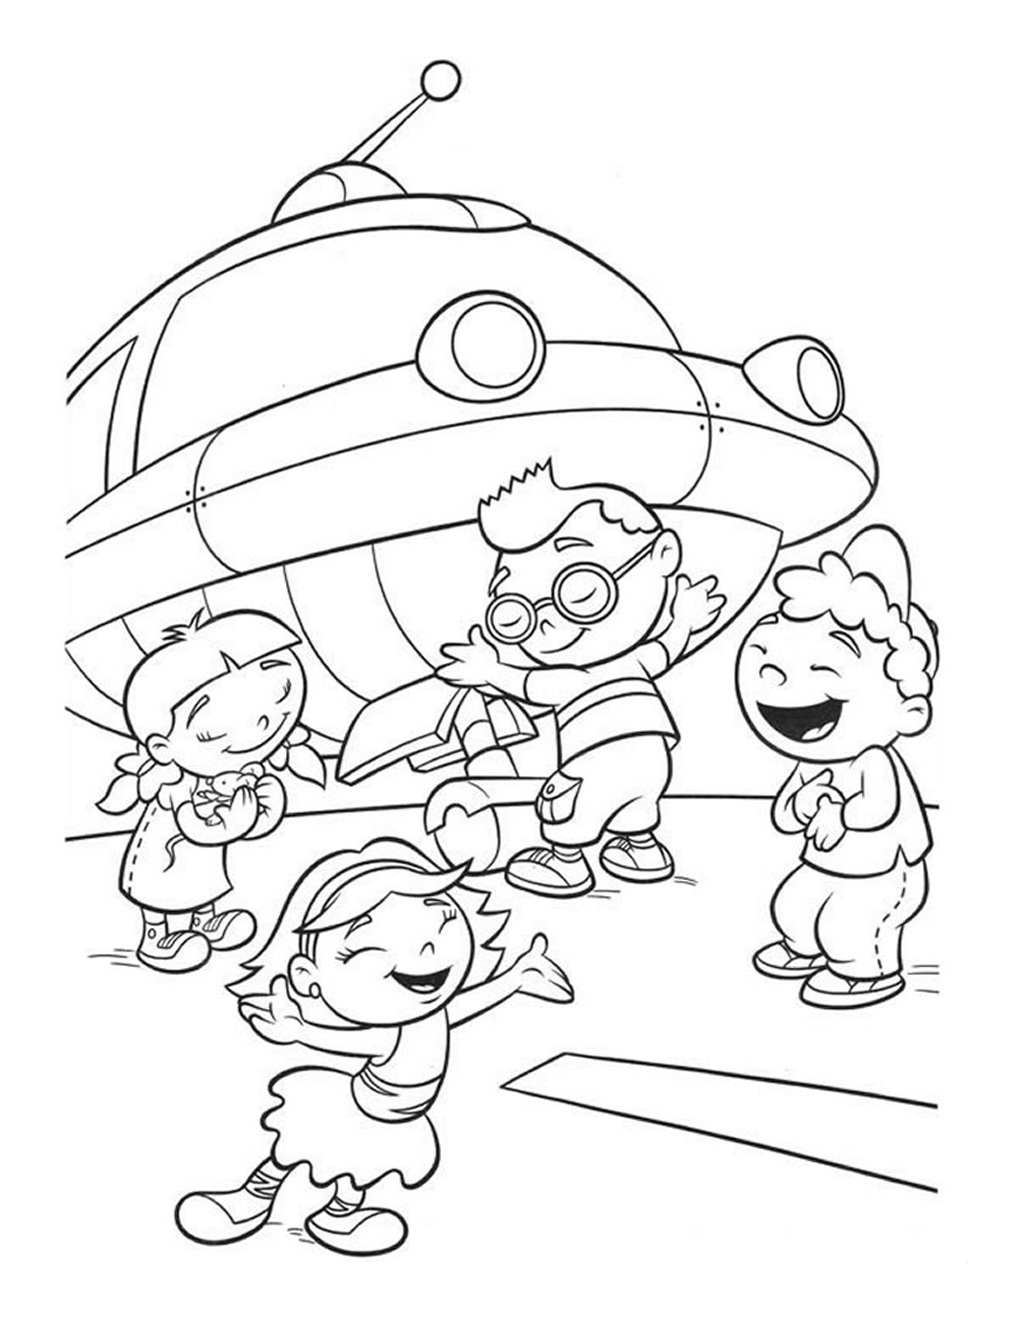 coloring pages for little kids - photo#29